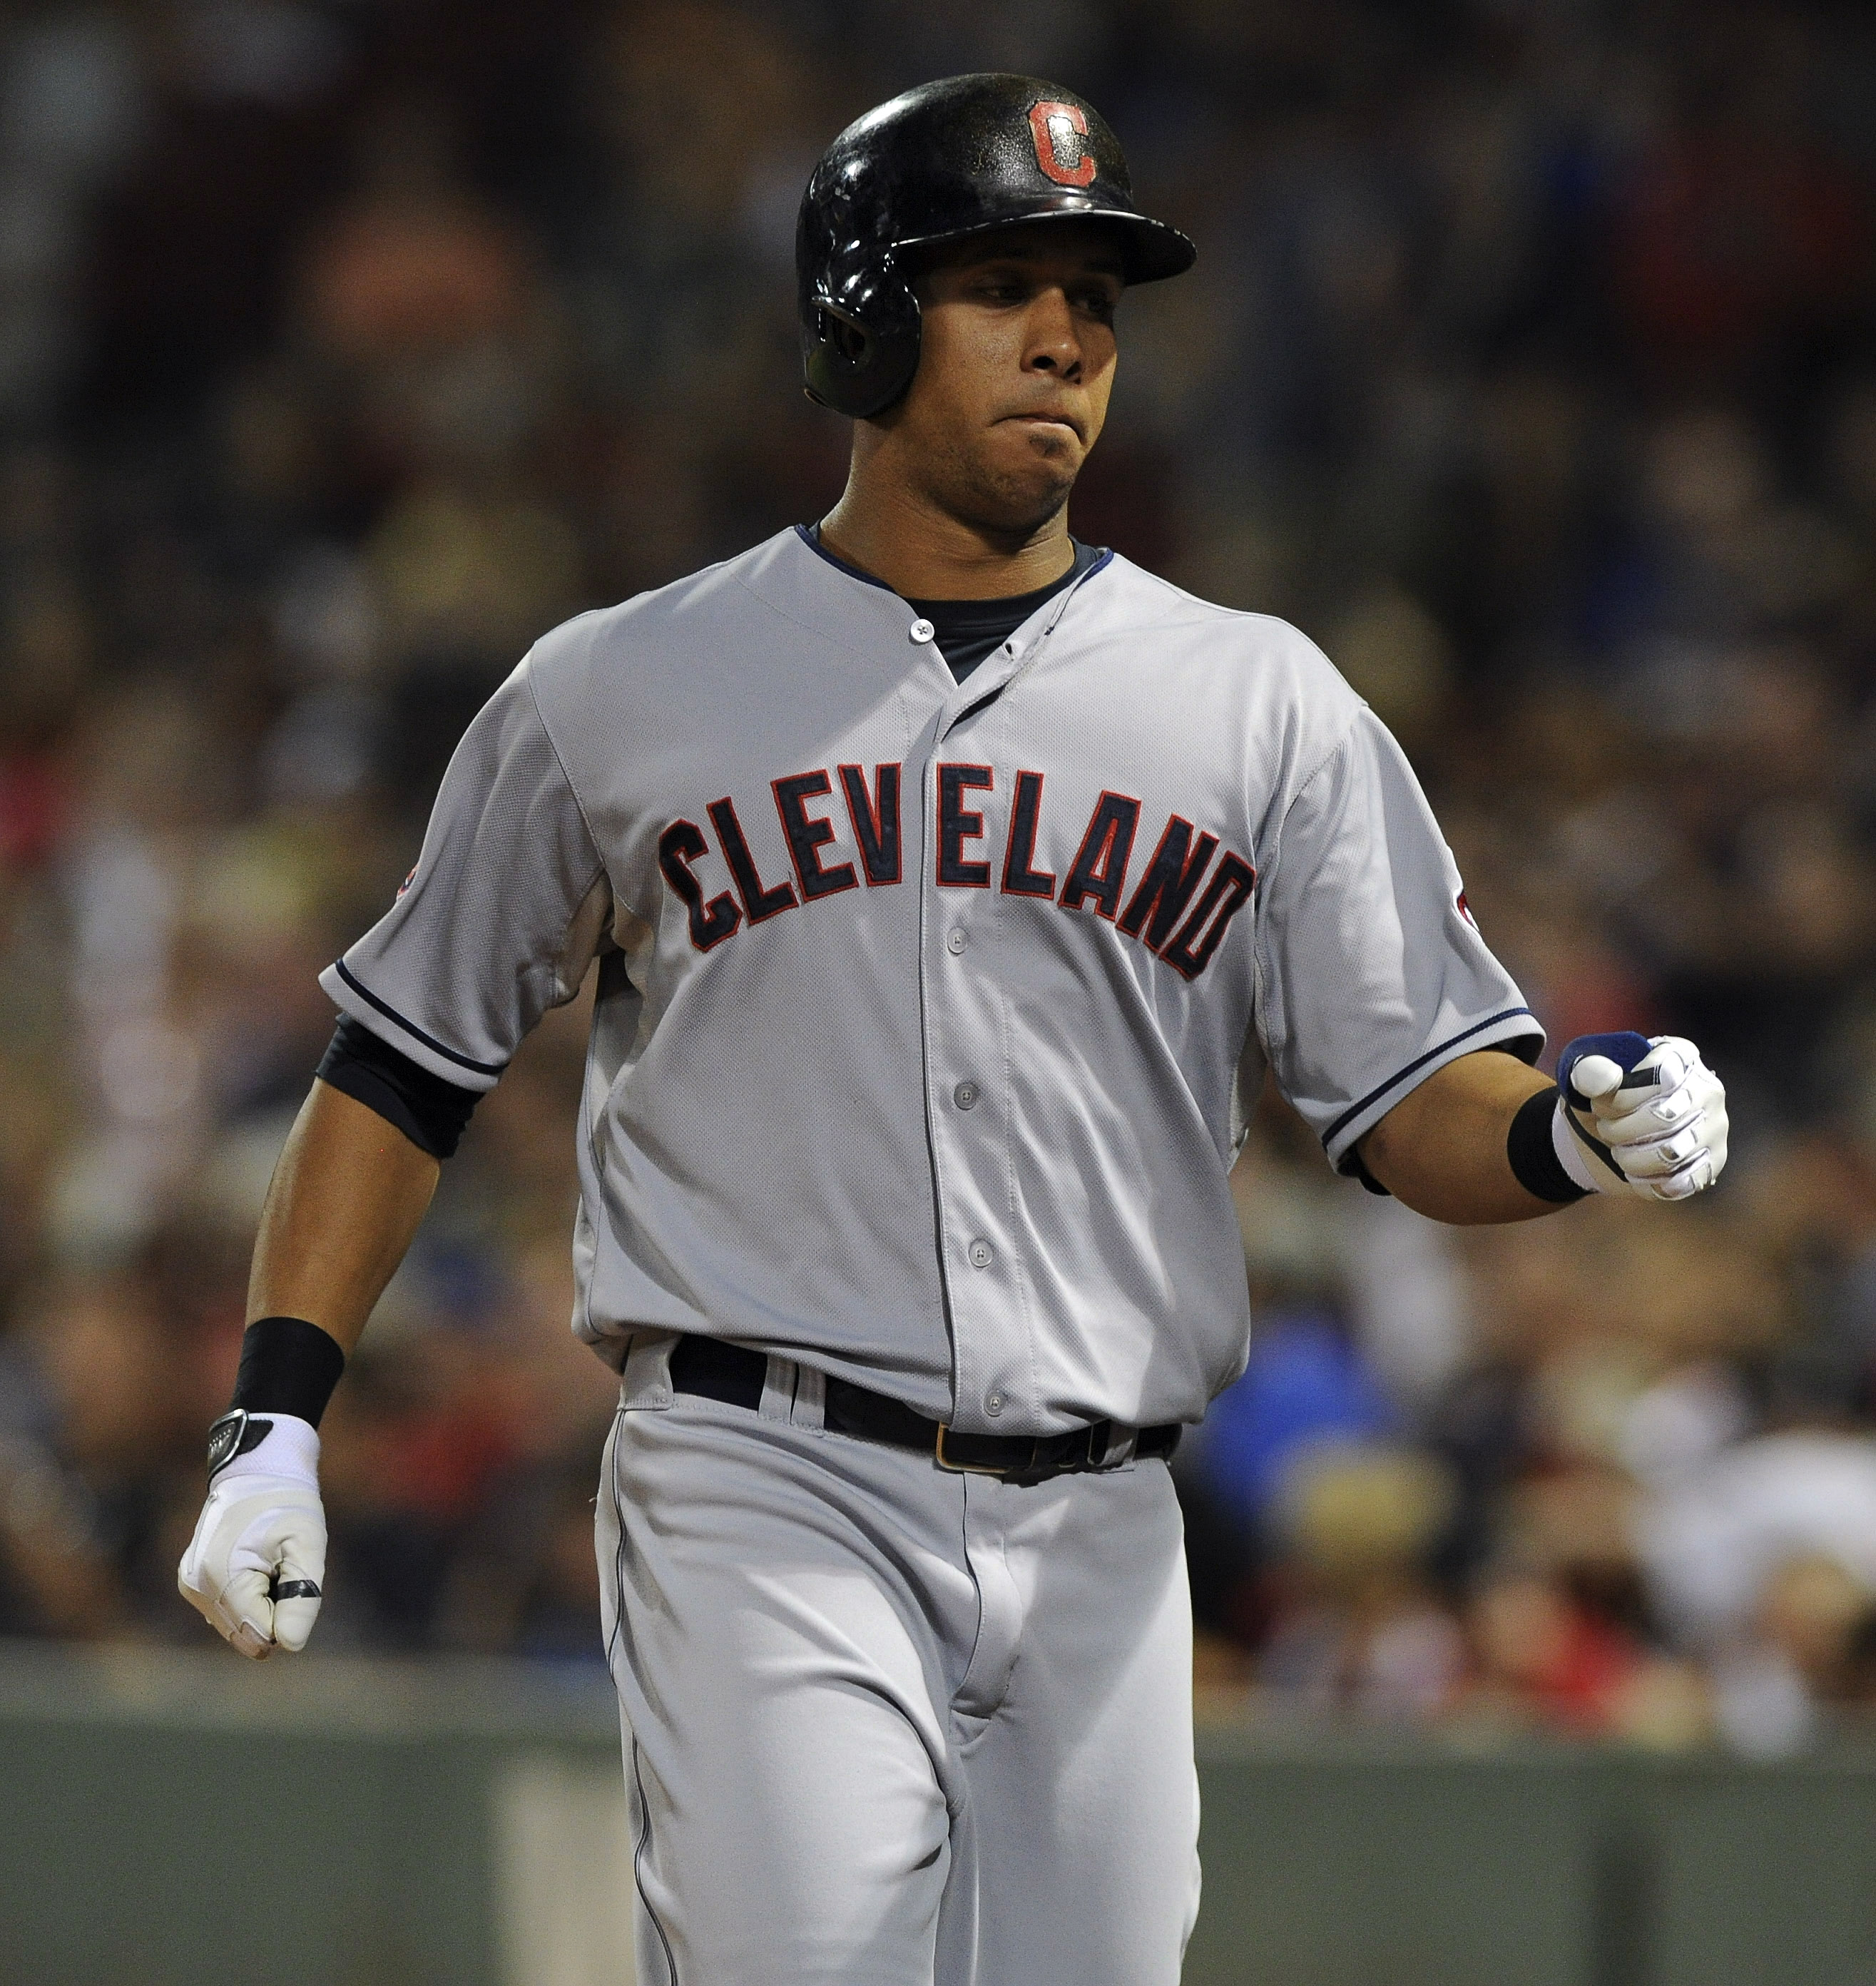 Michael Brantley will be sitting for at least the next week.